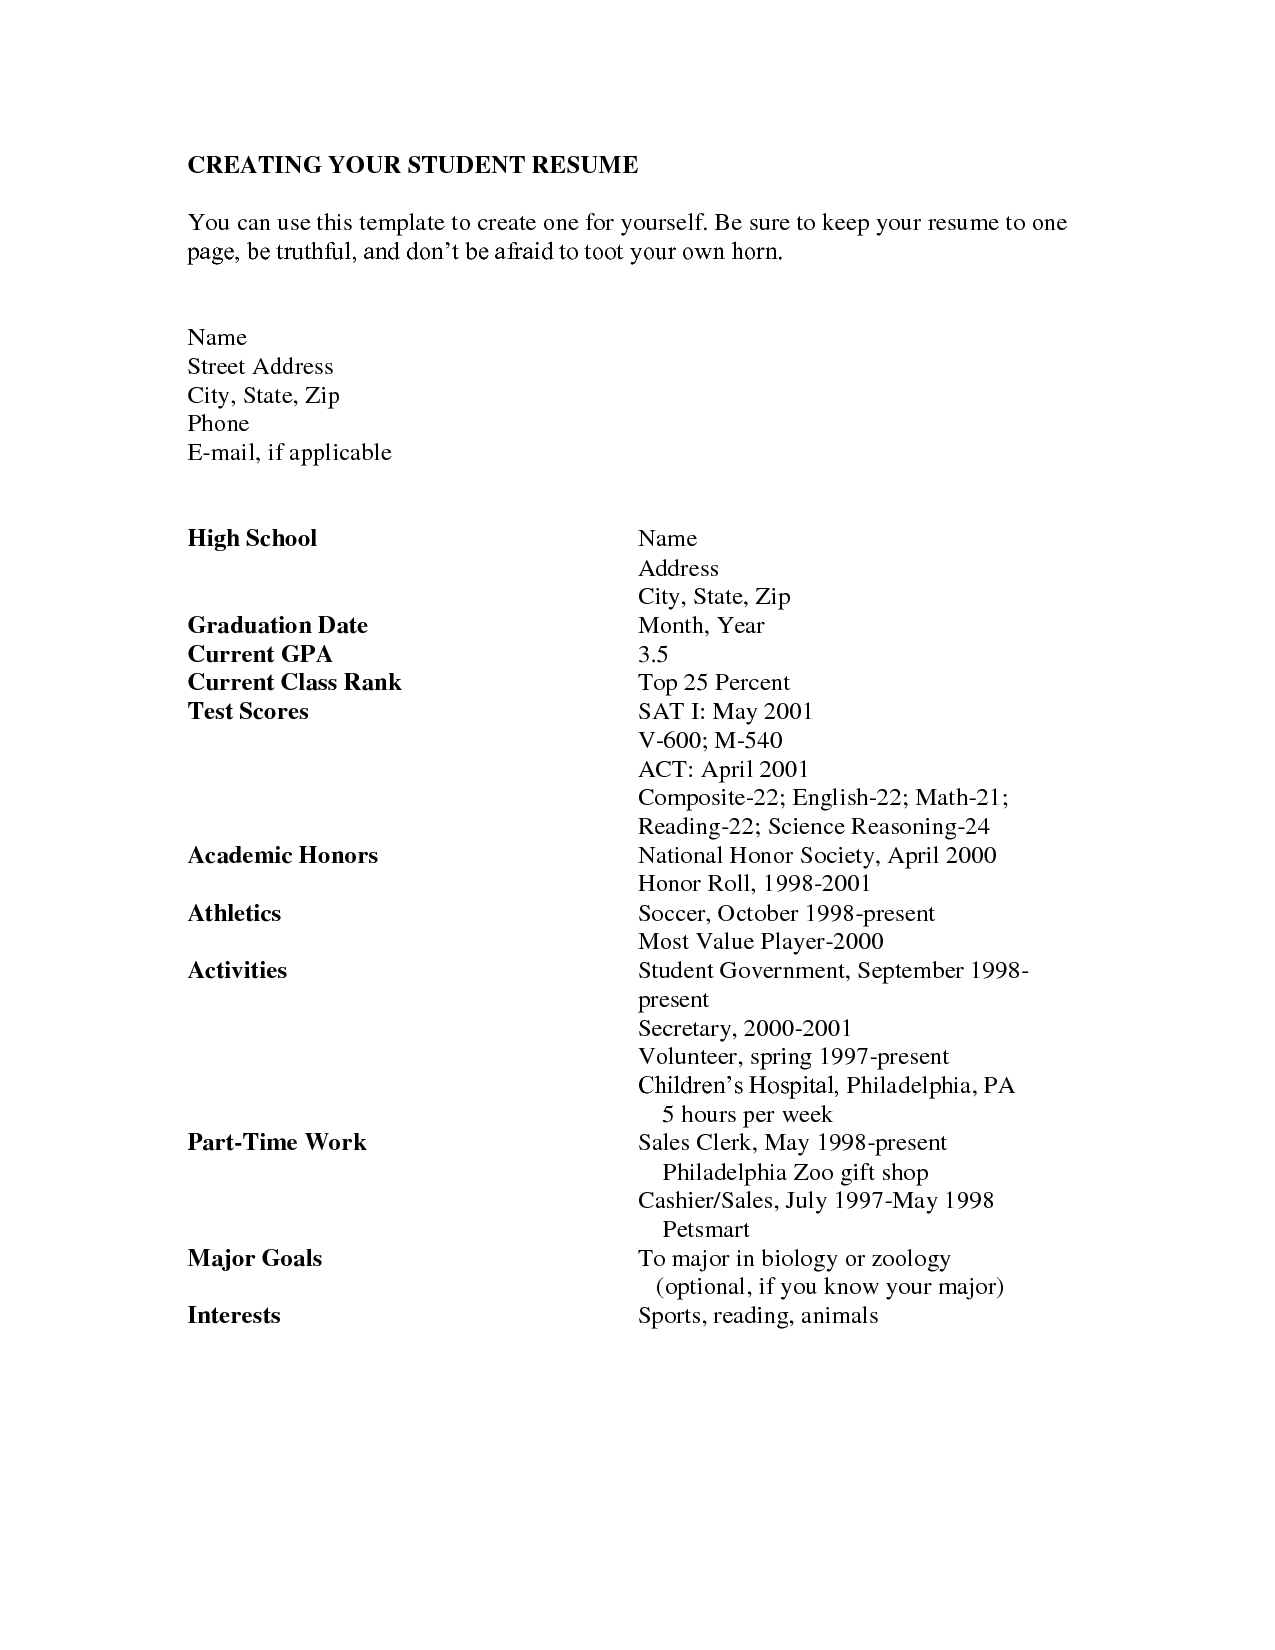 Academic Resume Template High School Resume Academic Resume Builder Resume Templates  Http